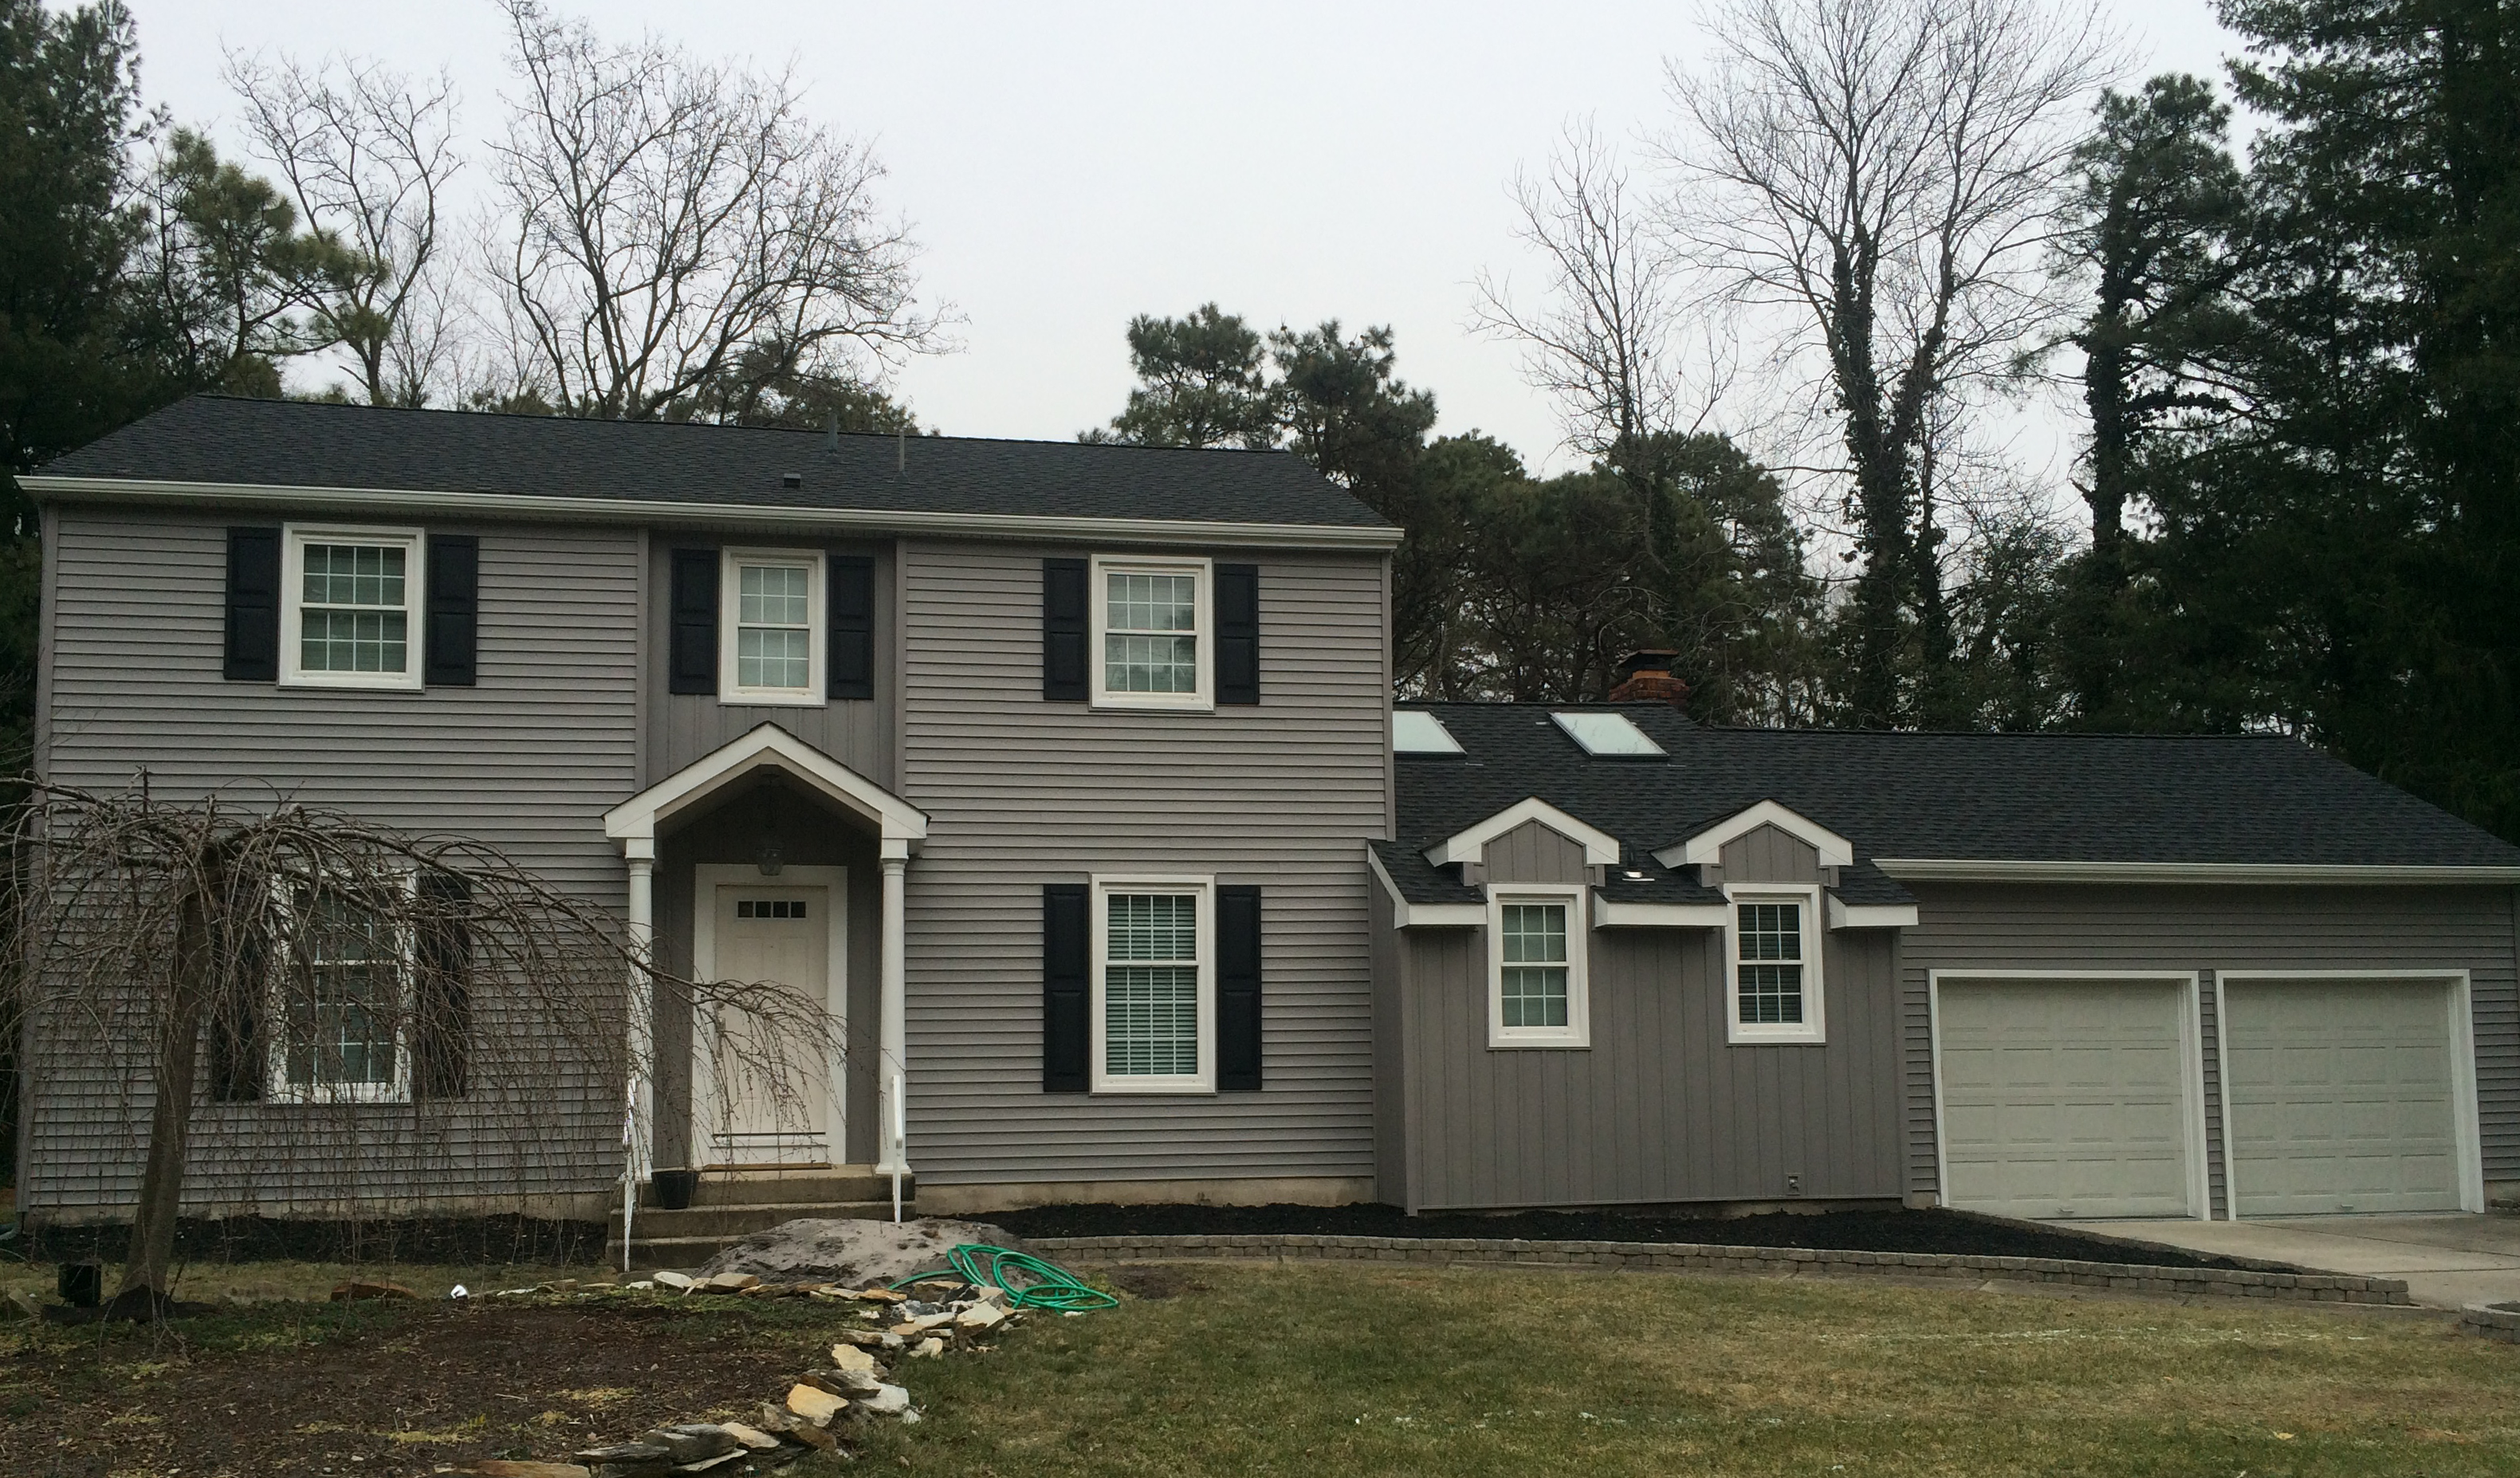 Certainteed Mainstreet Double 4 Granite Gray Siding South Jersey Roofing Marlton Roofers Installation Repair In 2020 Grey Siding Shutter Colors House Exterior